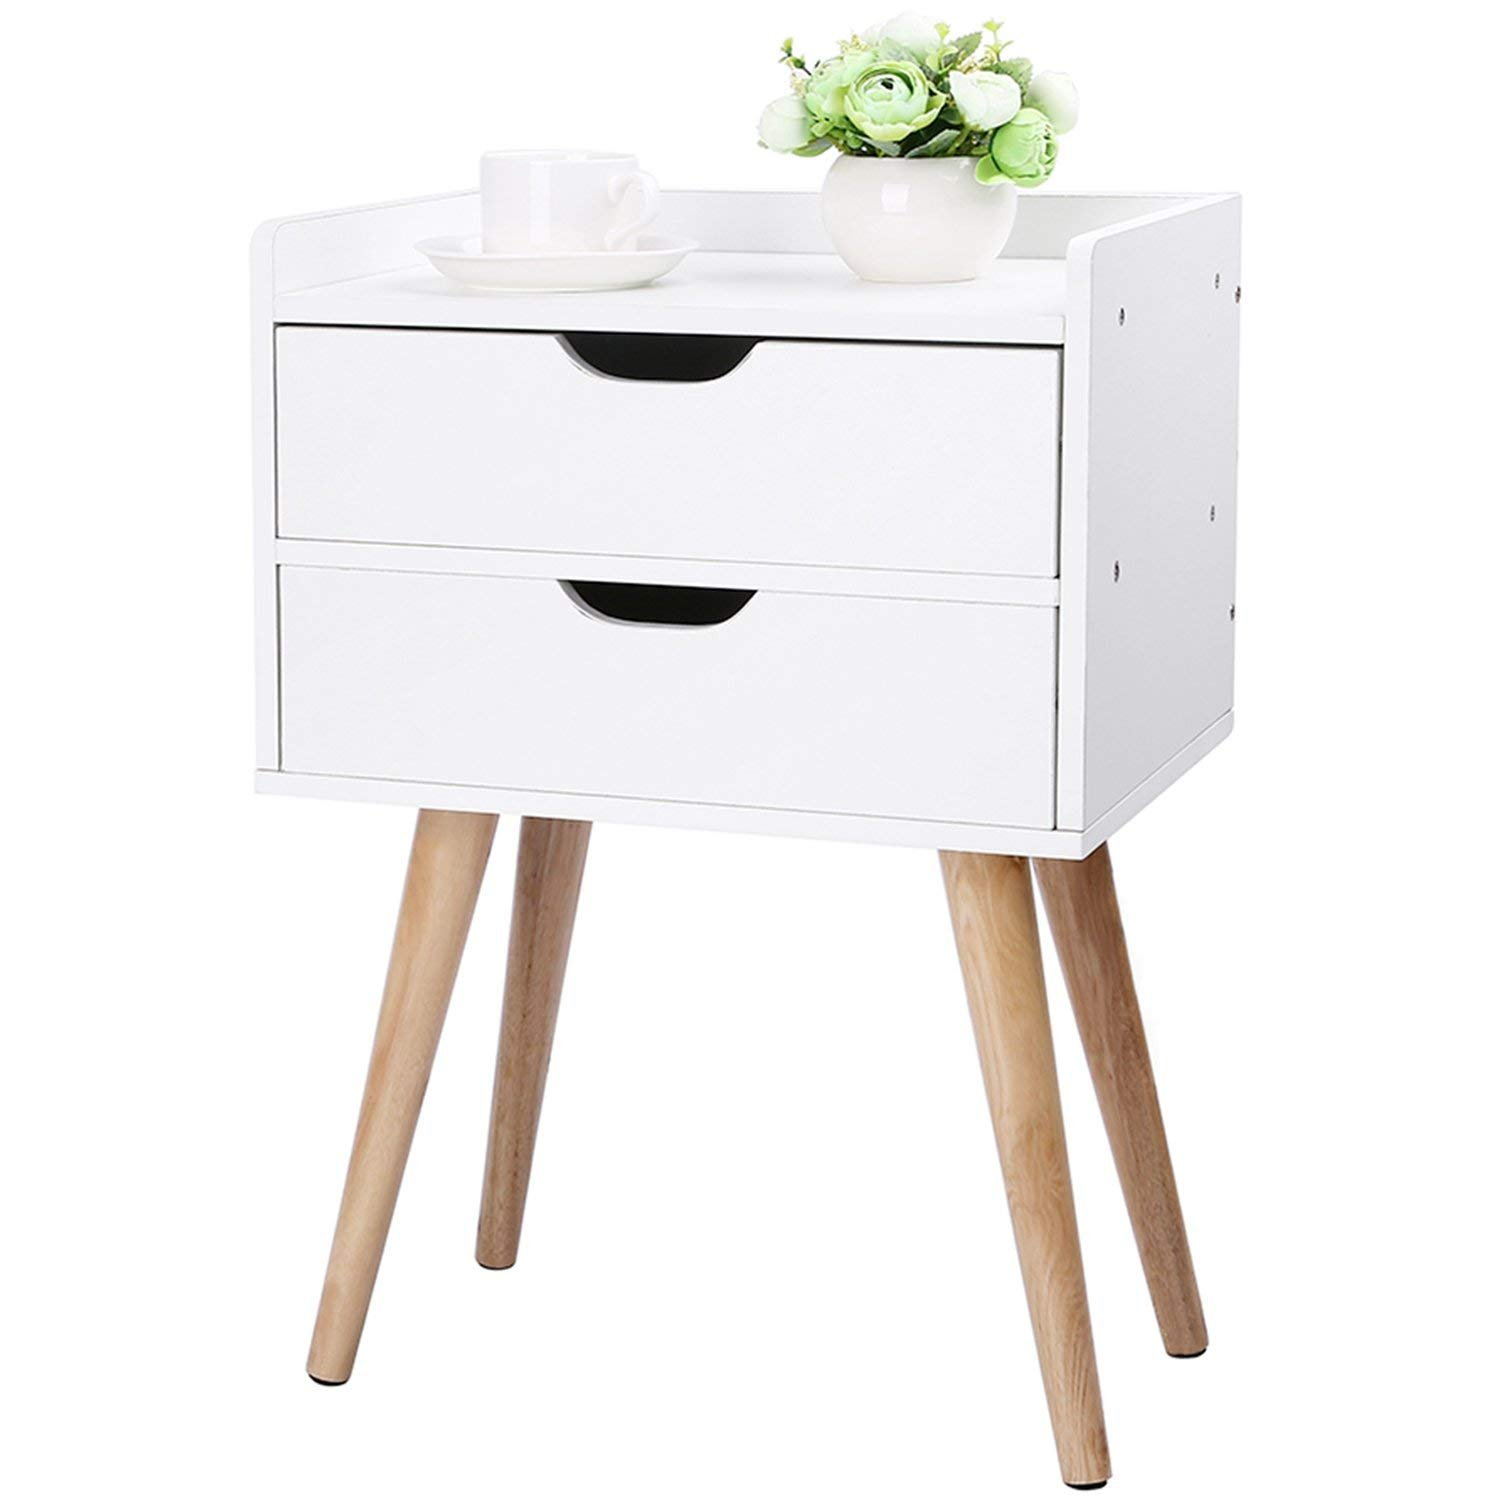 genenic Wood End Table Modern Nightstand Sofa Side Table with 2-Drawer Storage Chairside Bedside Table for Bedroom Office